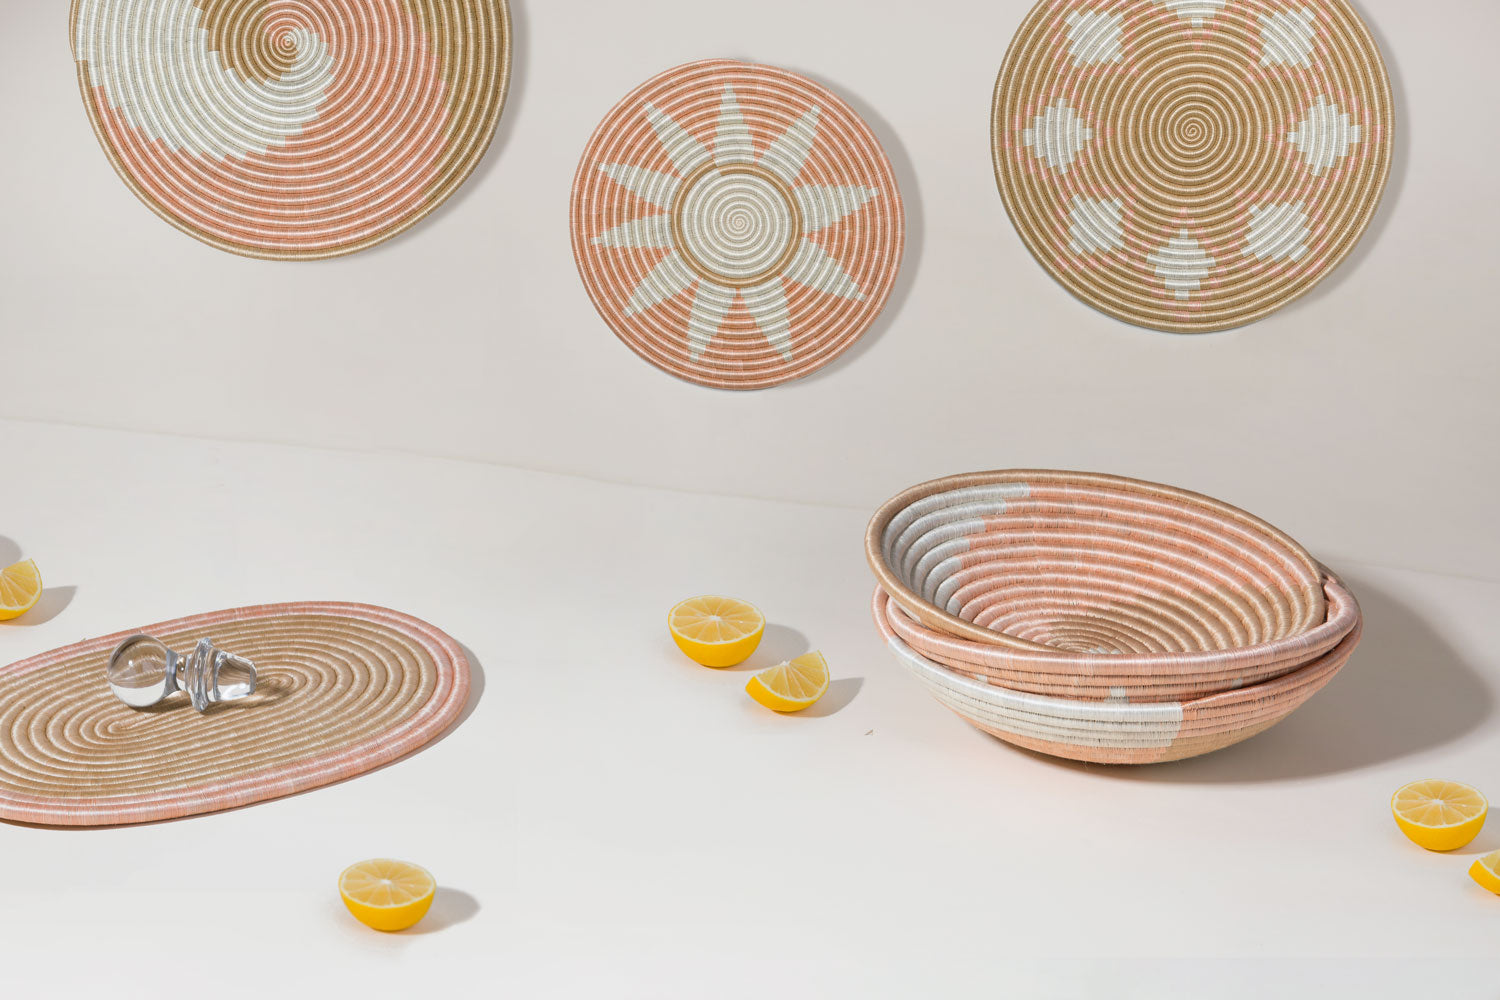 Pieces from the Blush Collection sitting on a tan background with bright yellow lemons surrounding the bowls and flat circles and flat ovals.